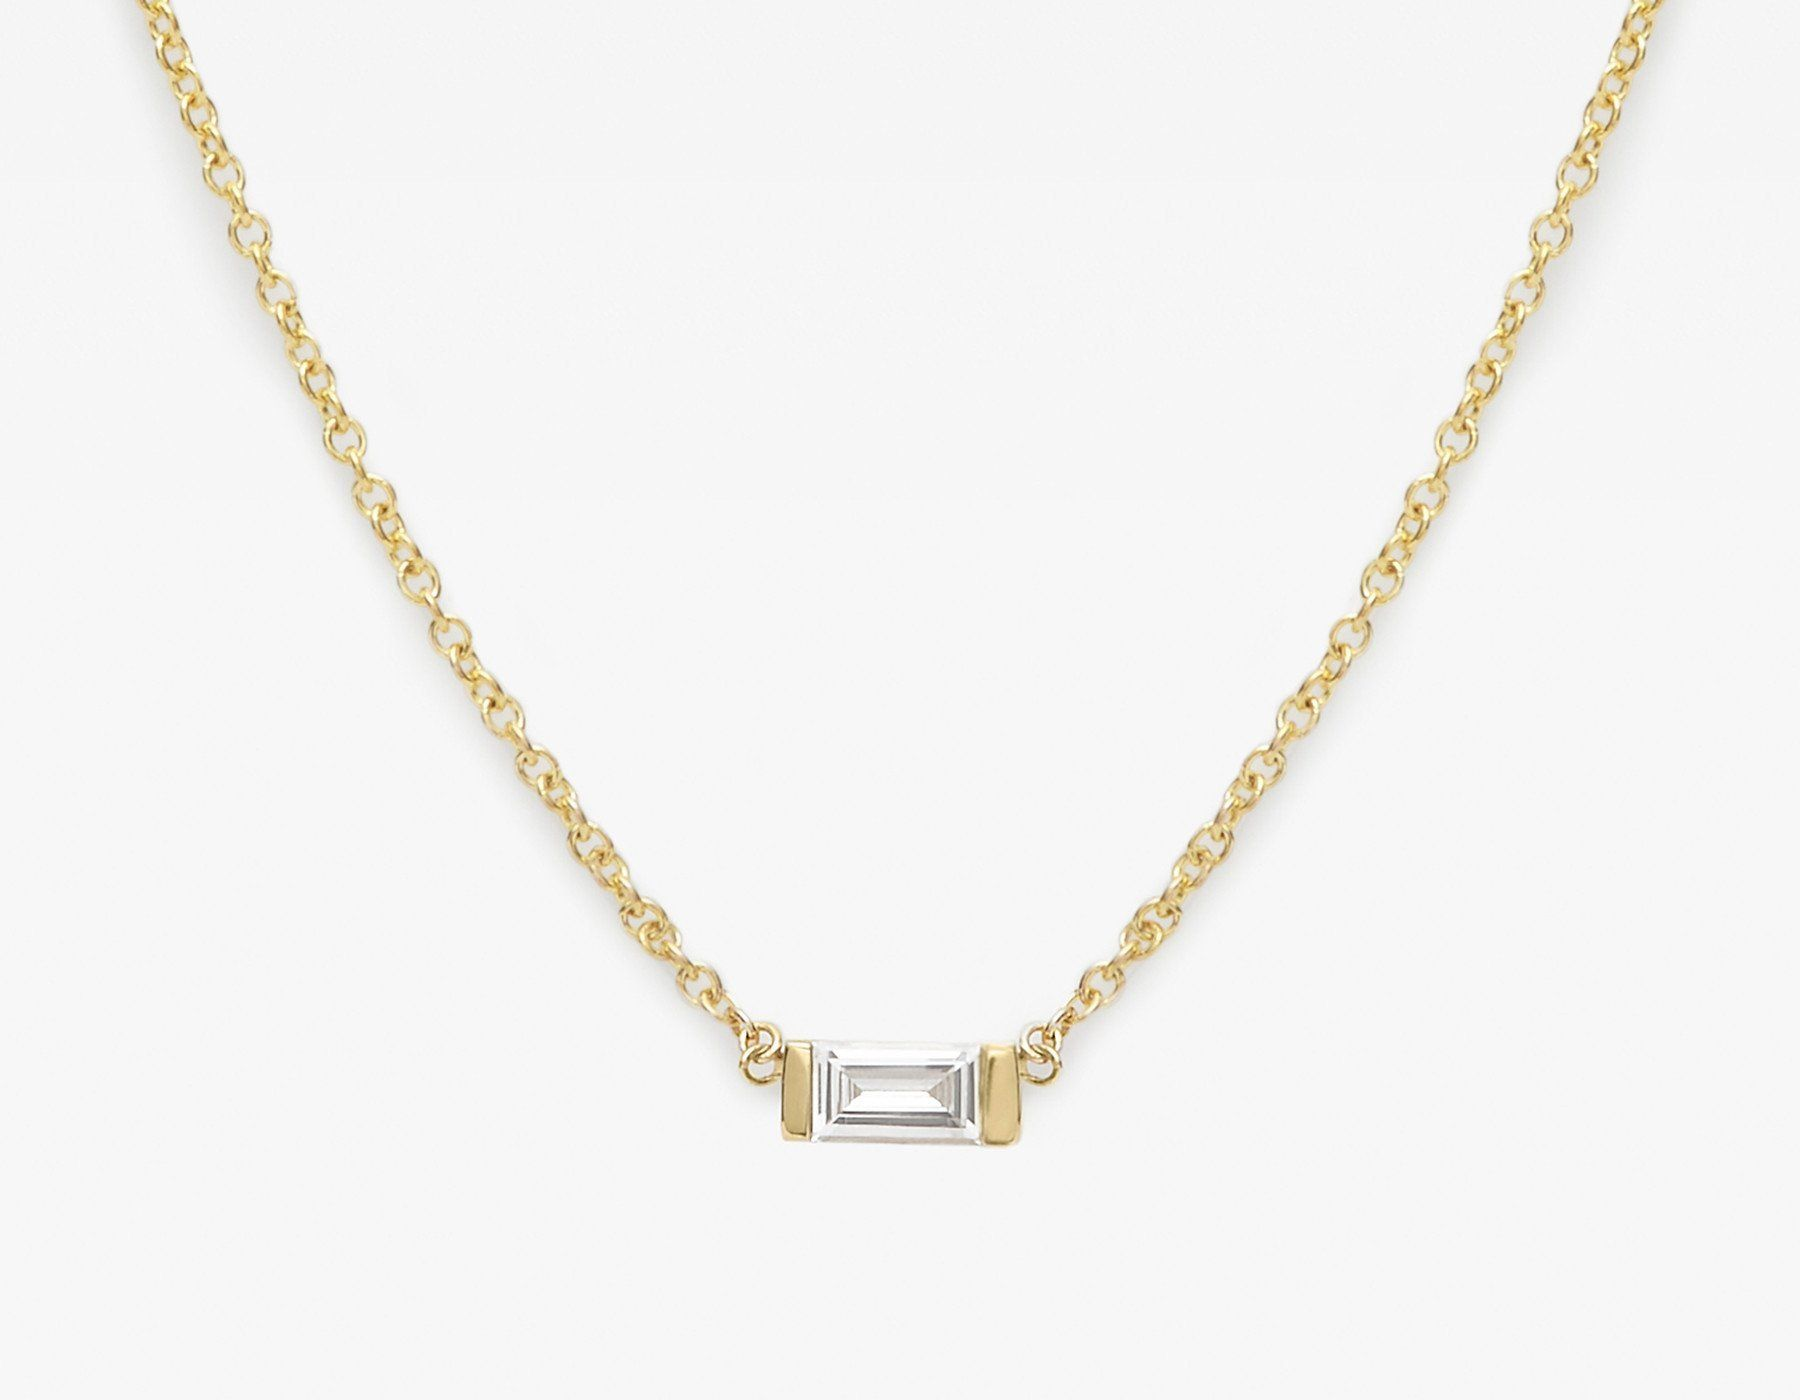 Baguette Diamond Necklace   Diamond, Gold and Bling